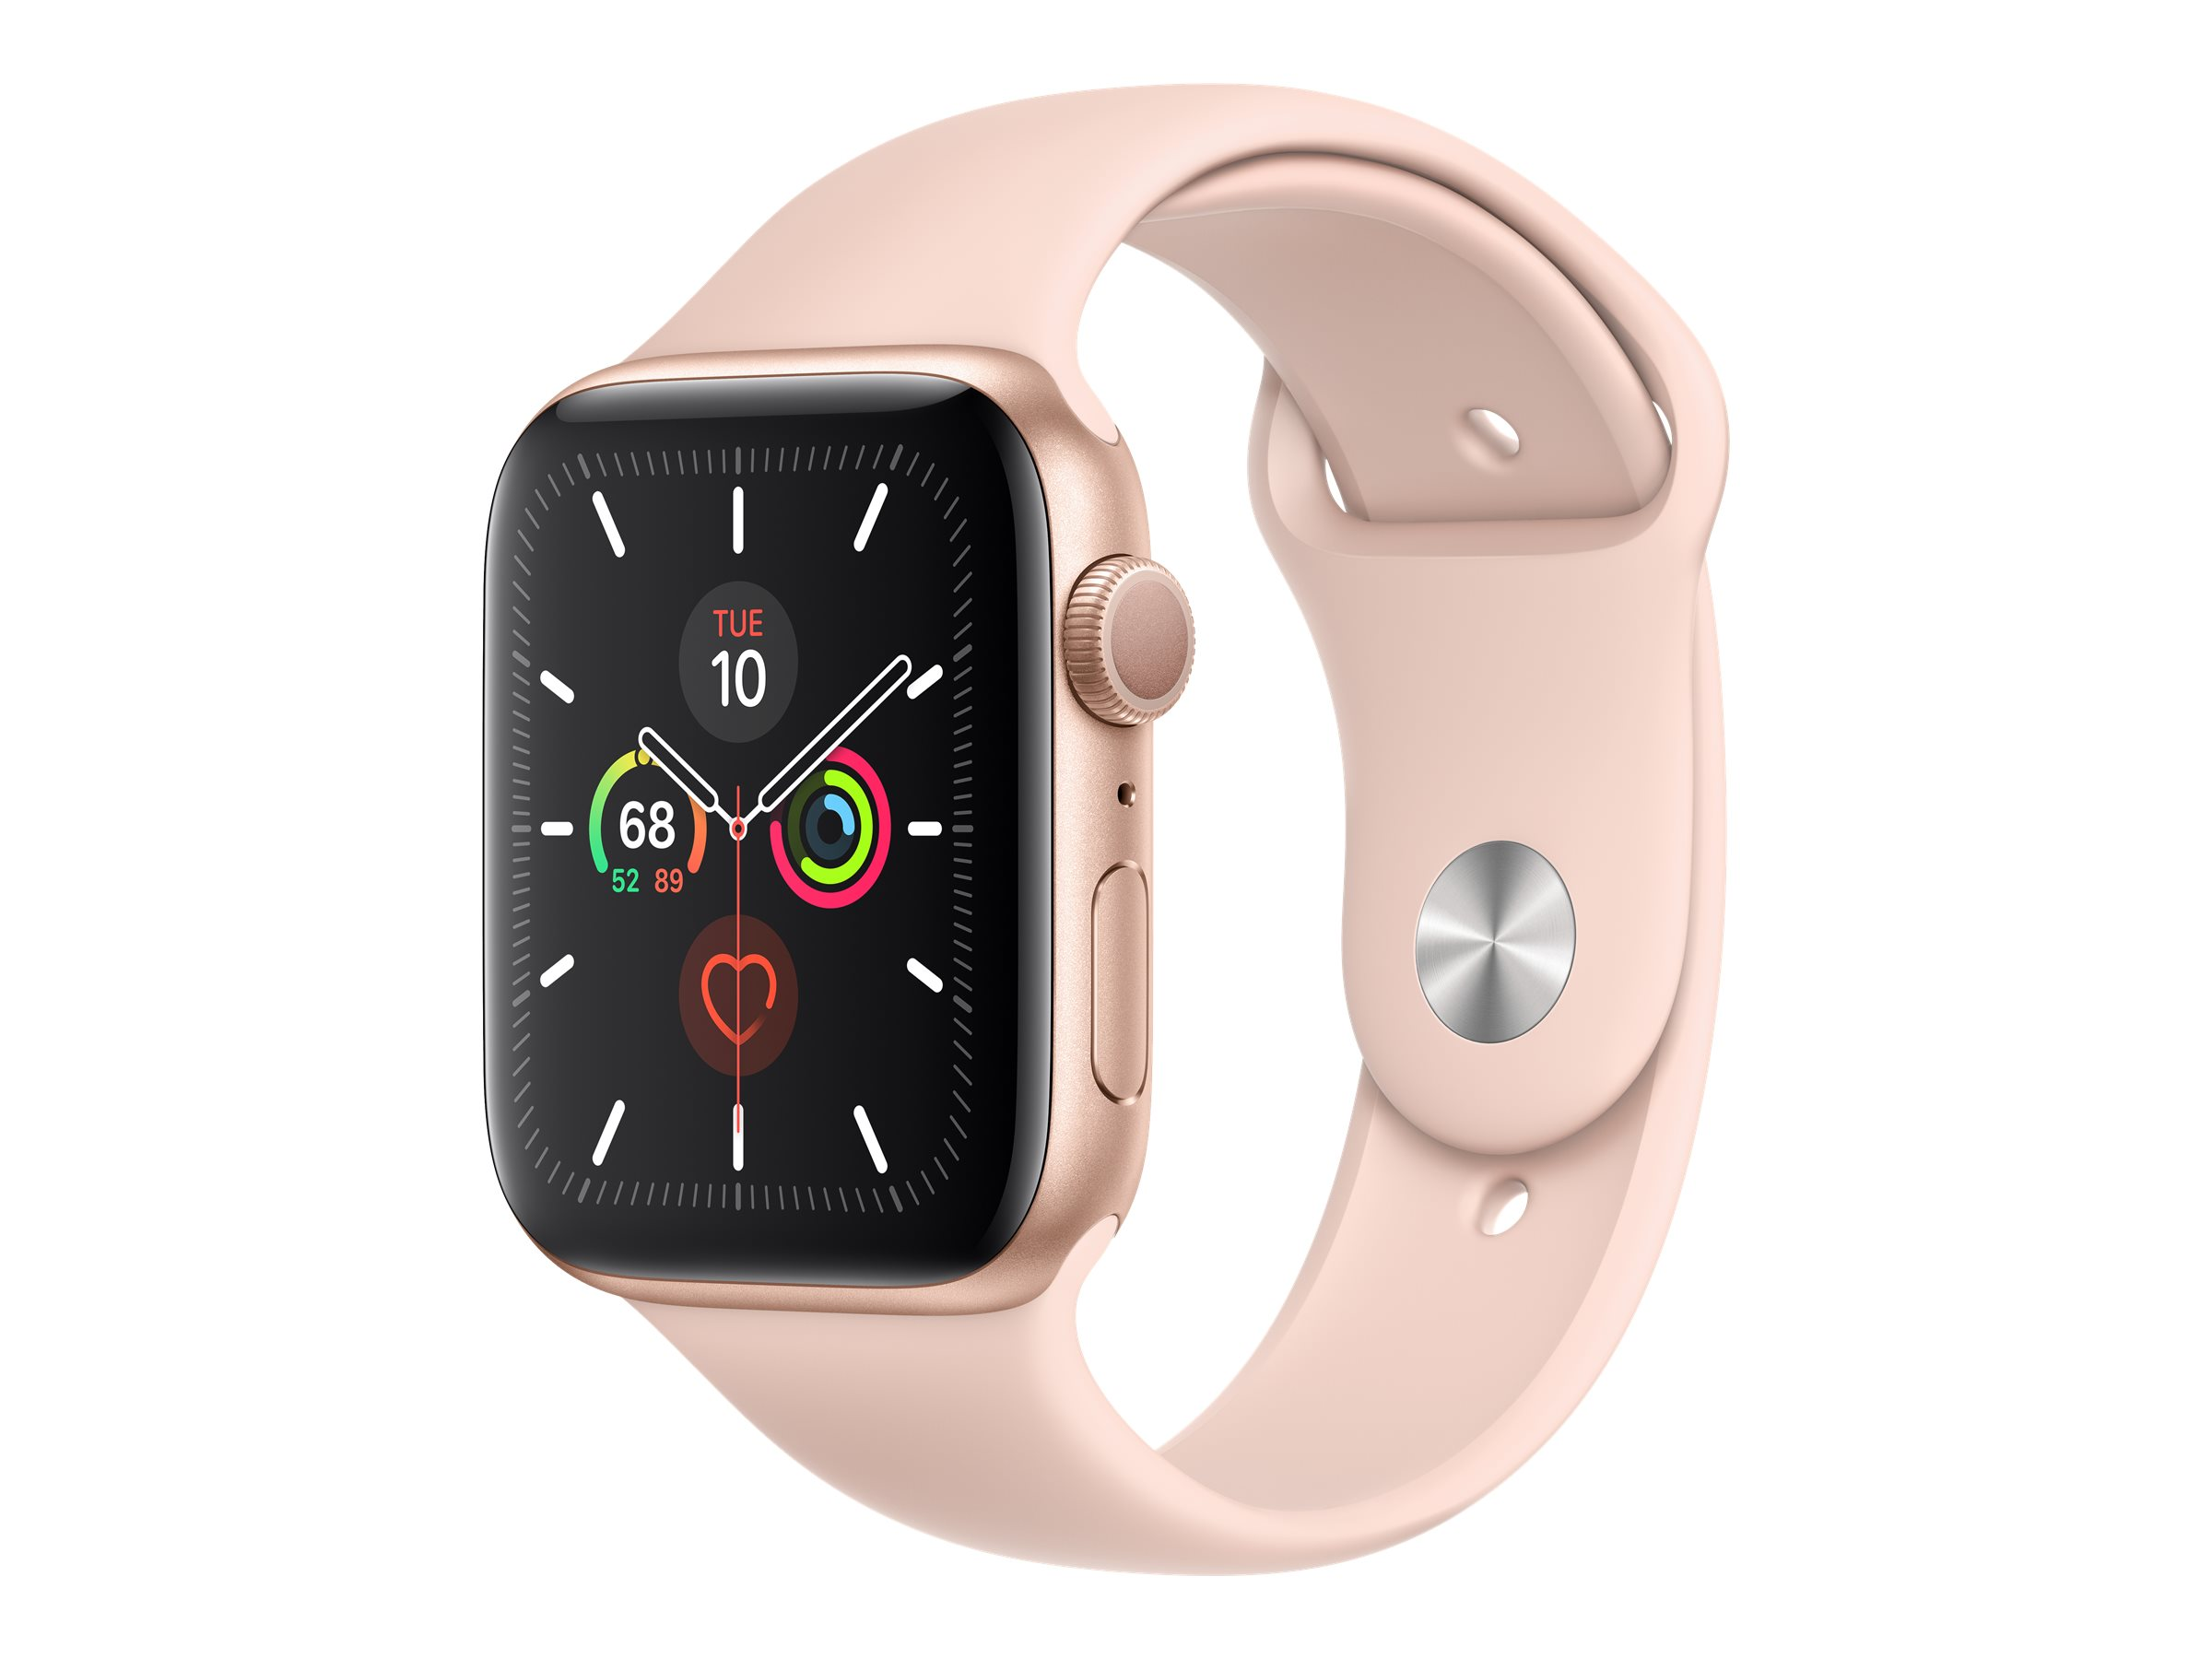 Apple Watch Series 5 (GPS + Cellular) - gold aluminum - smart watch with sport band - pink sand - 32 GB - not specified